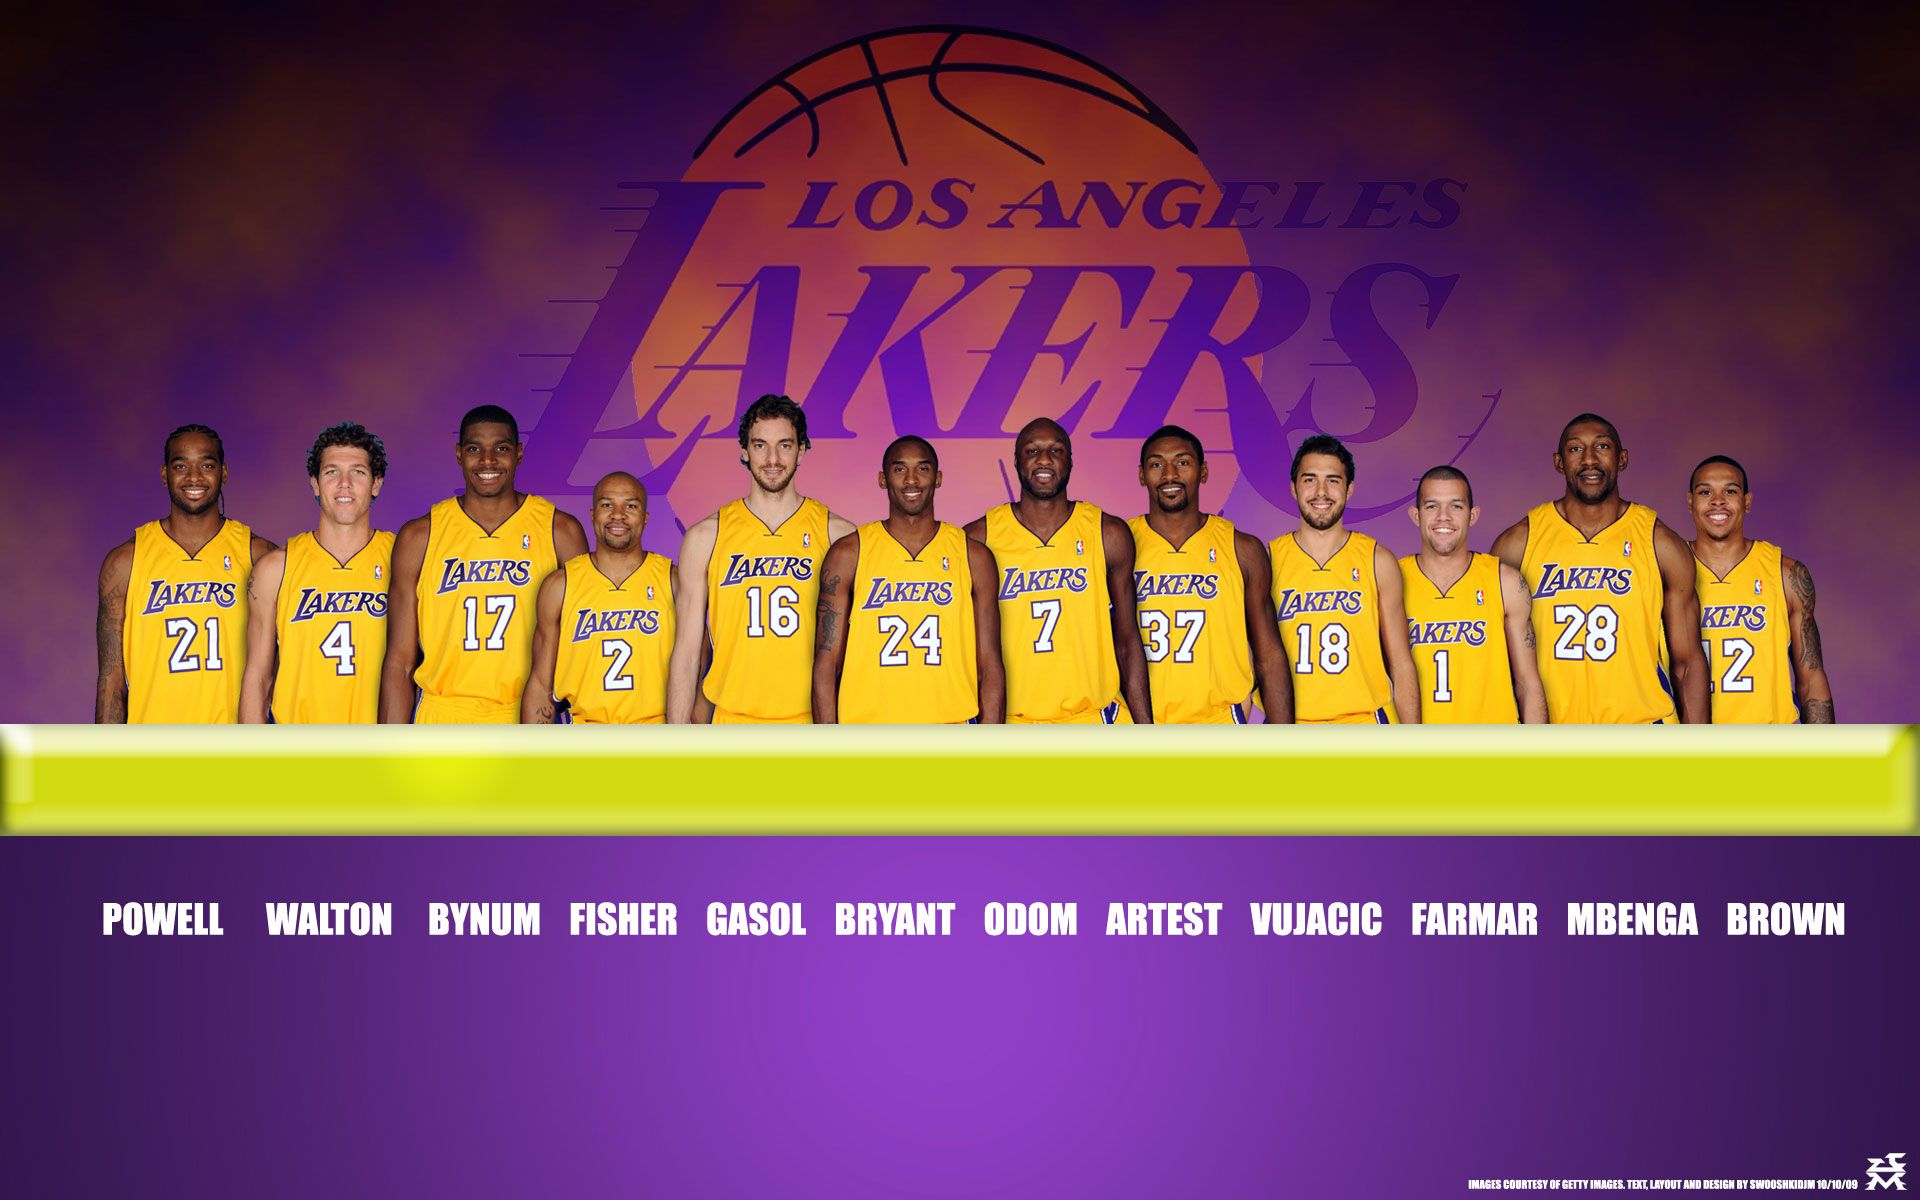 Pin By Kbmamba On Lakers Los Angeles Lakers Team Wallpaper Lakers Team